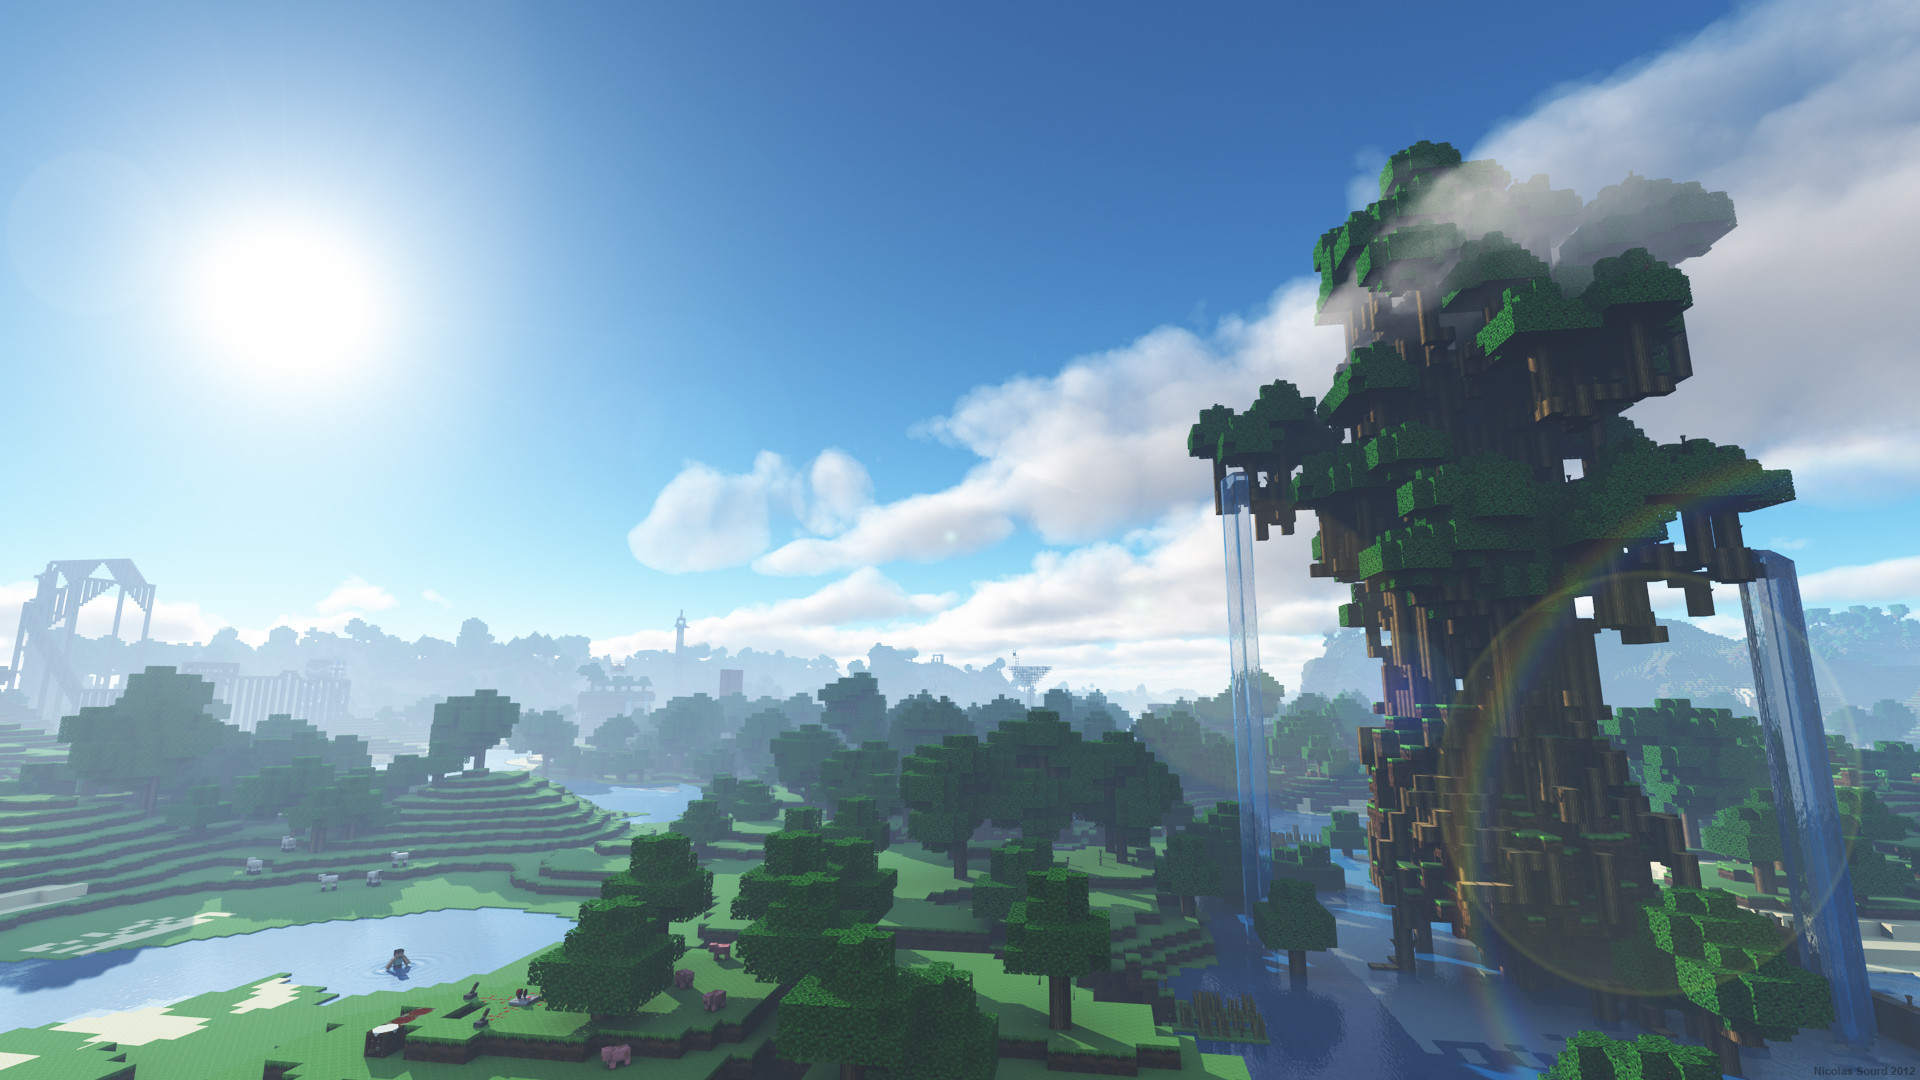 Fondos De Pantalla De Minecraft Wallpapers HD E Imgenes